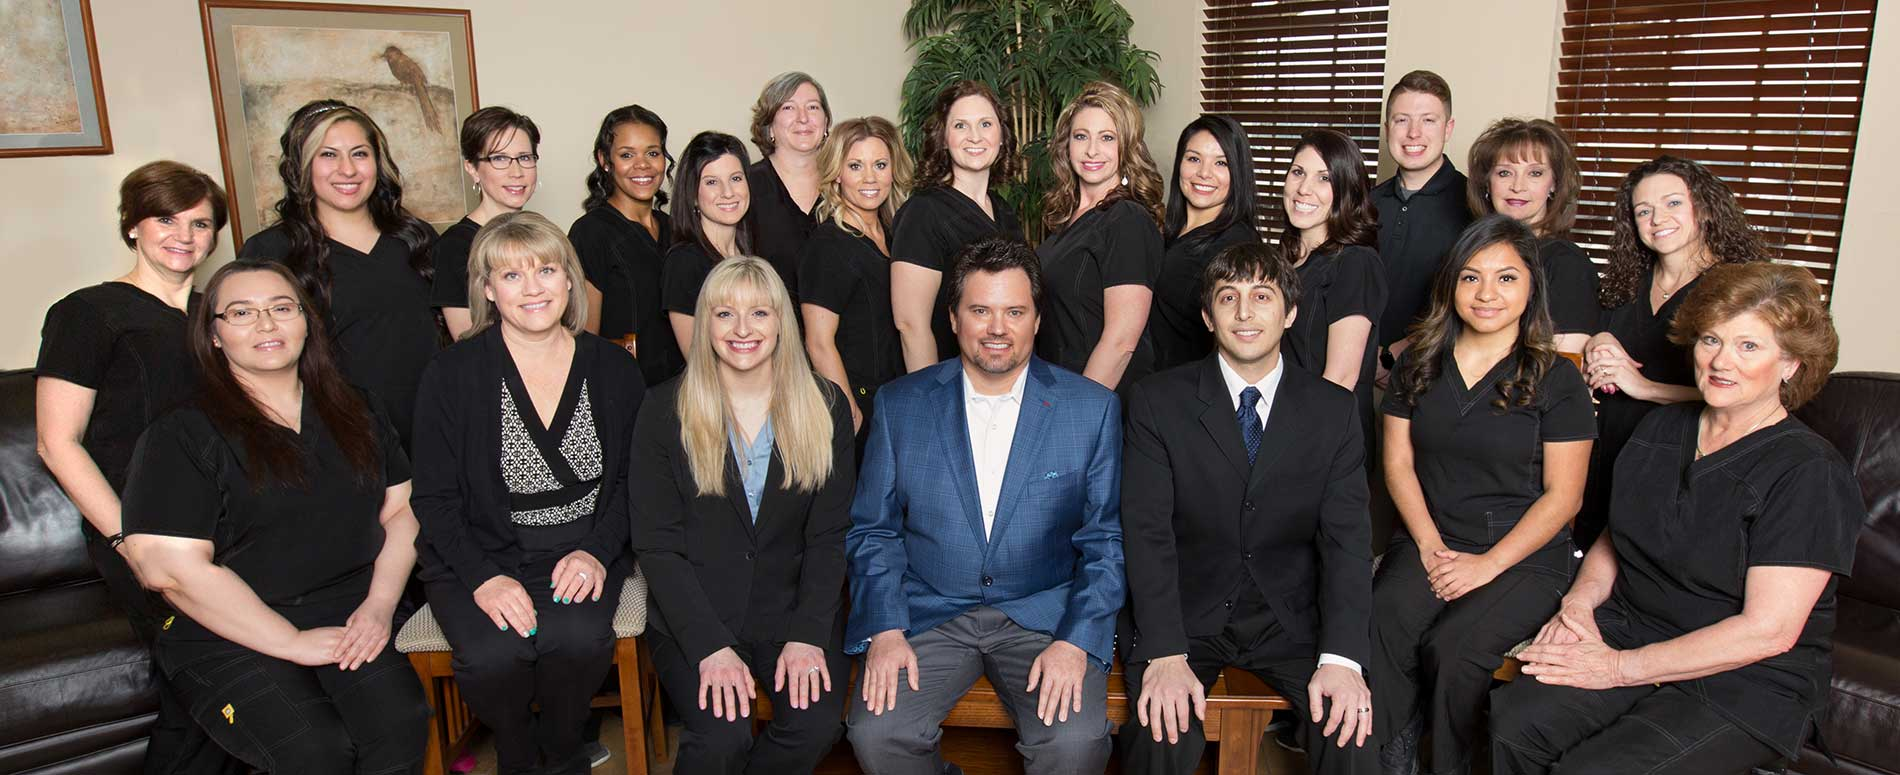 Honesty, integrity, timeliness, organization as well as quality care are synonymous with the practice of Waxahachie Family Dentistry.